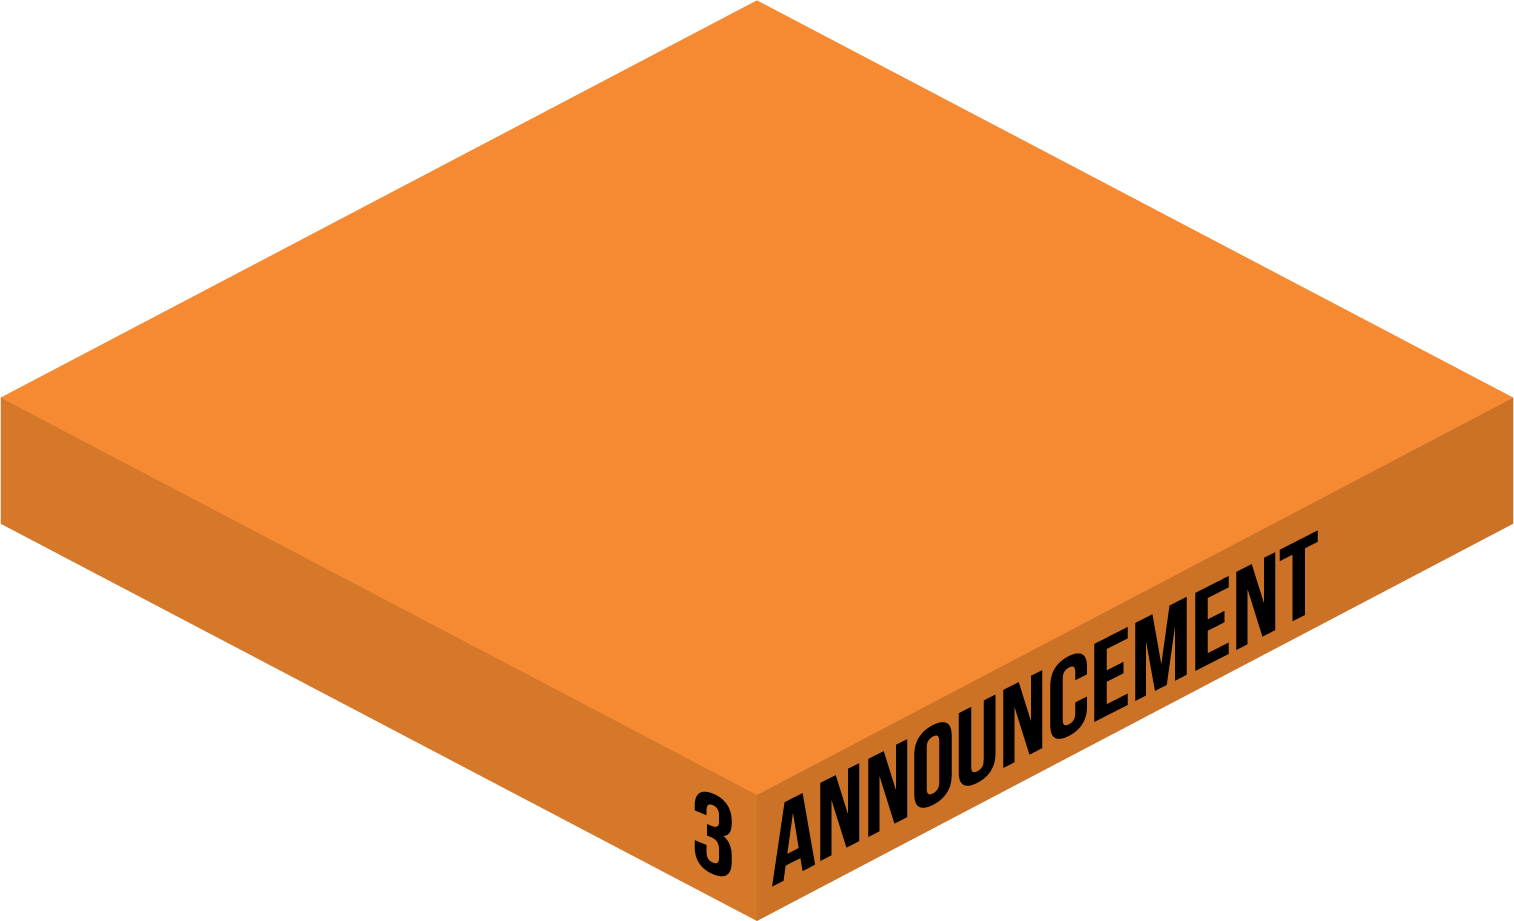 3. ANNOUNCEMENT